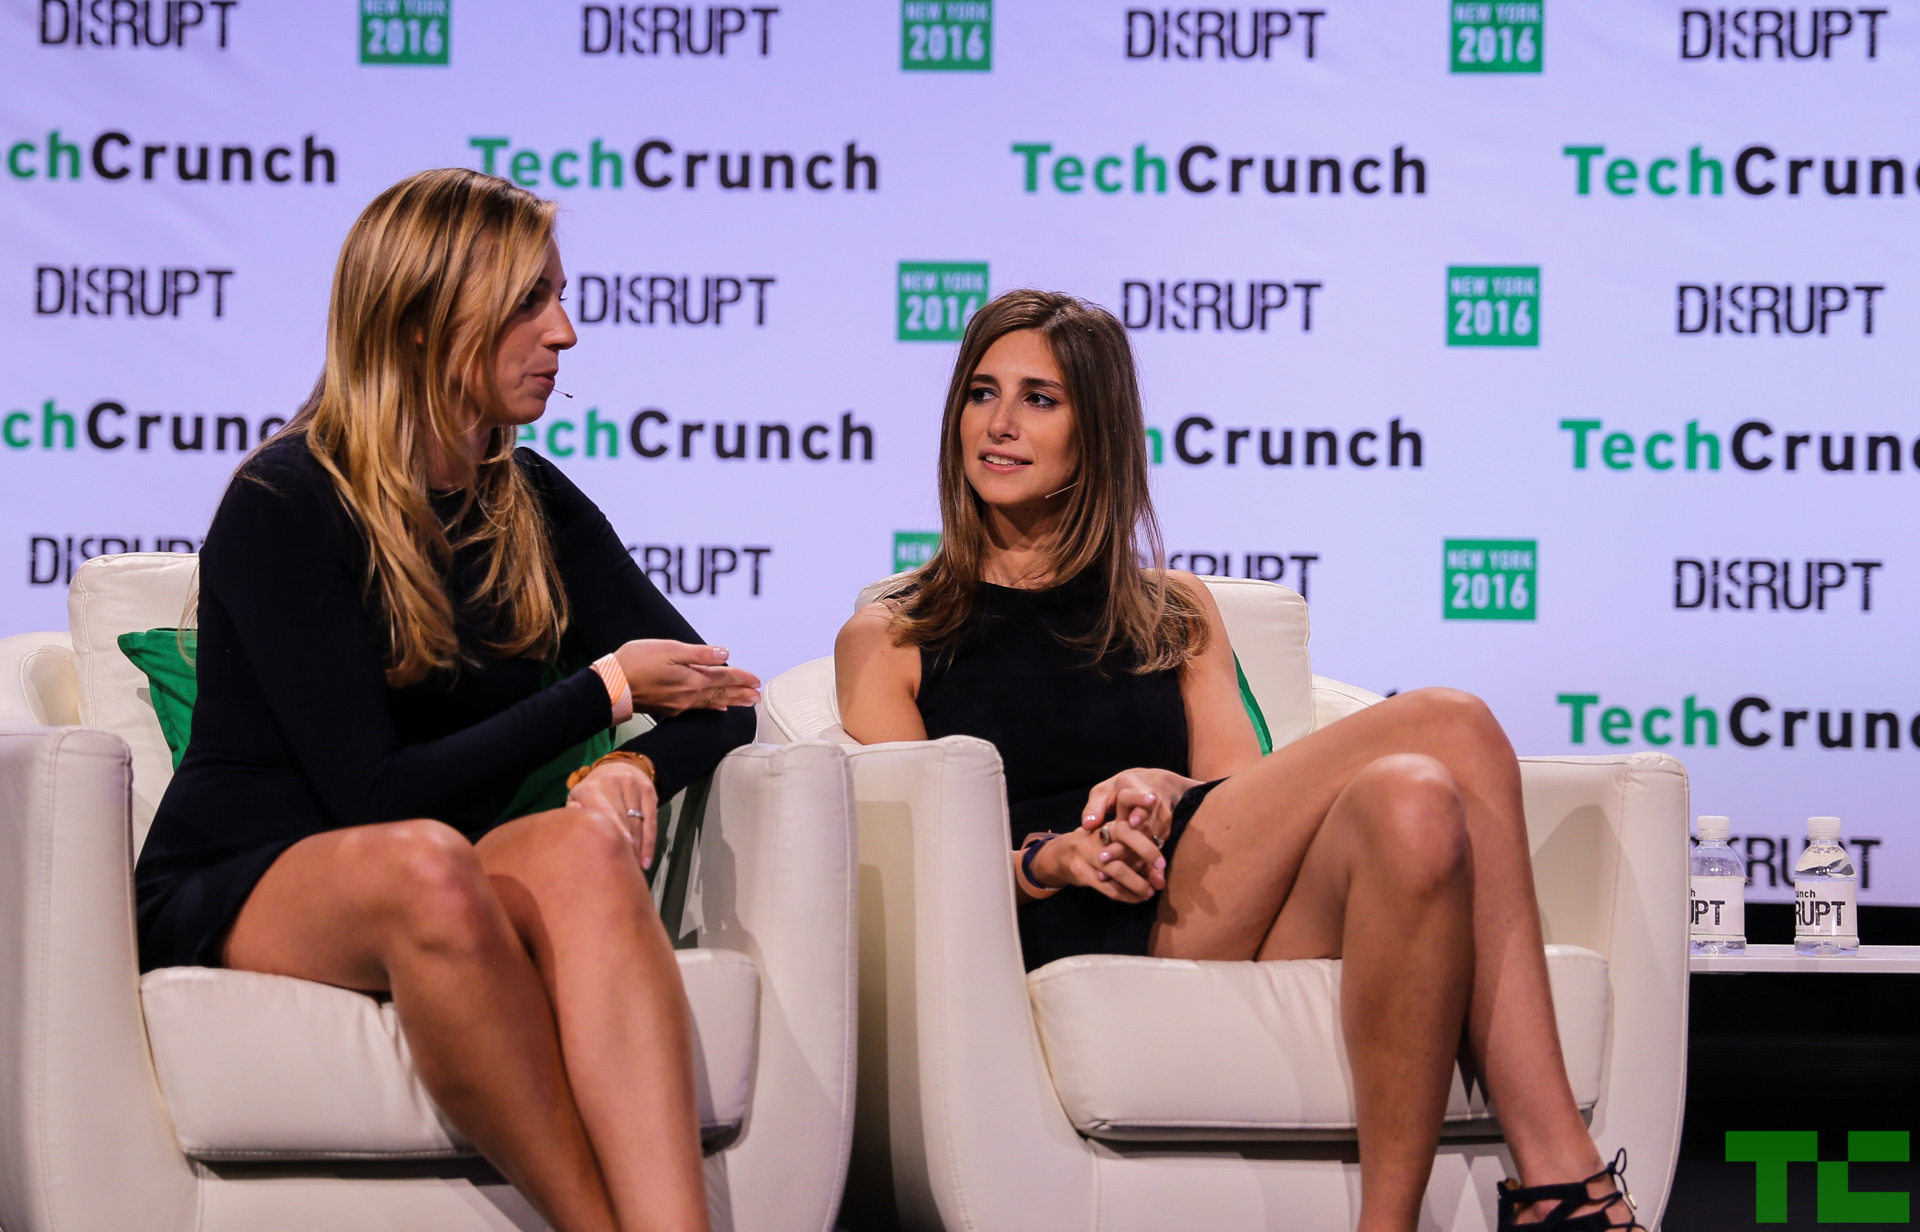 TheSkimm closes its $12M Series C with big names Shonda Rhimes and Tyra Banks on board